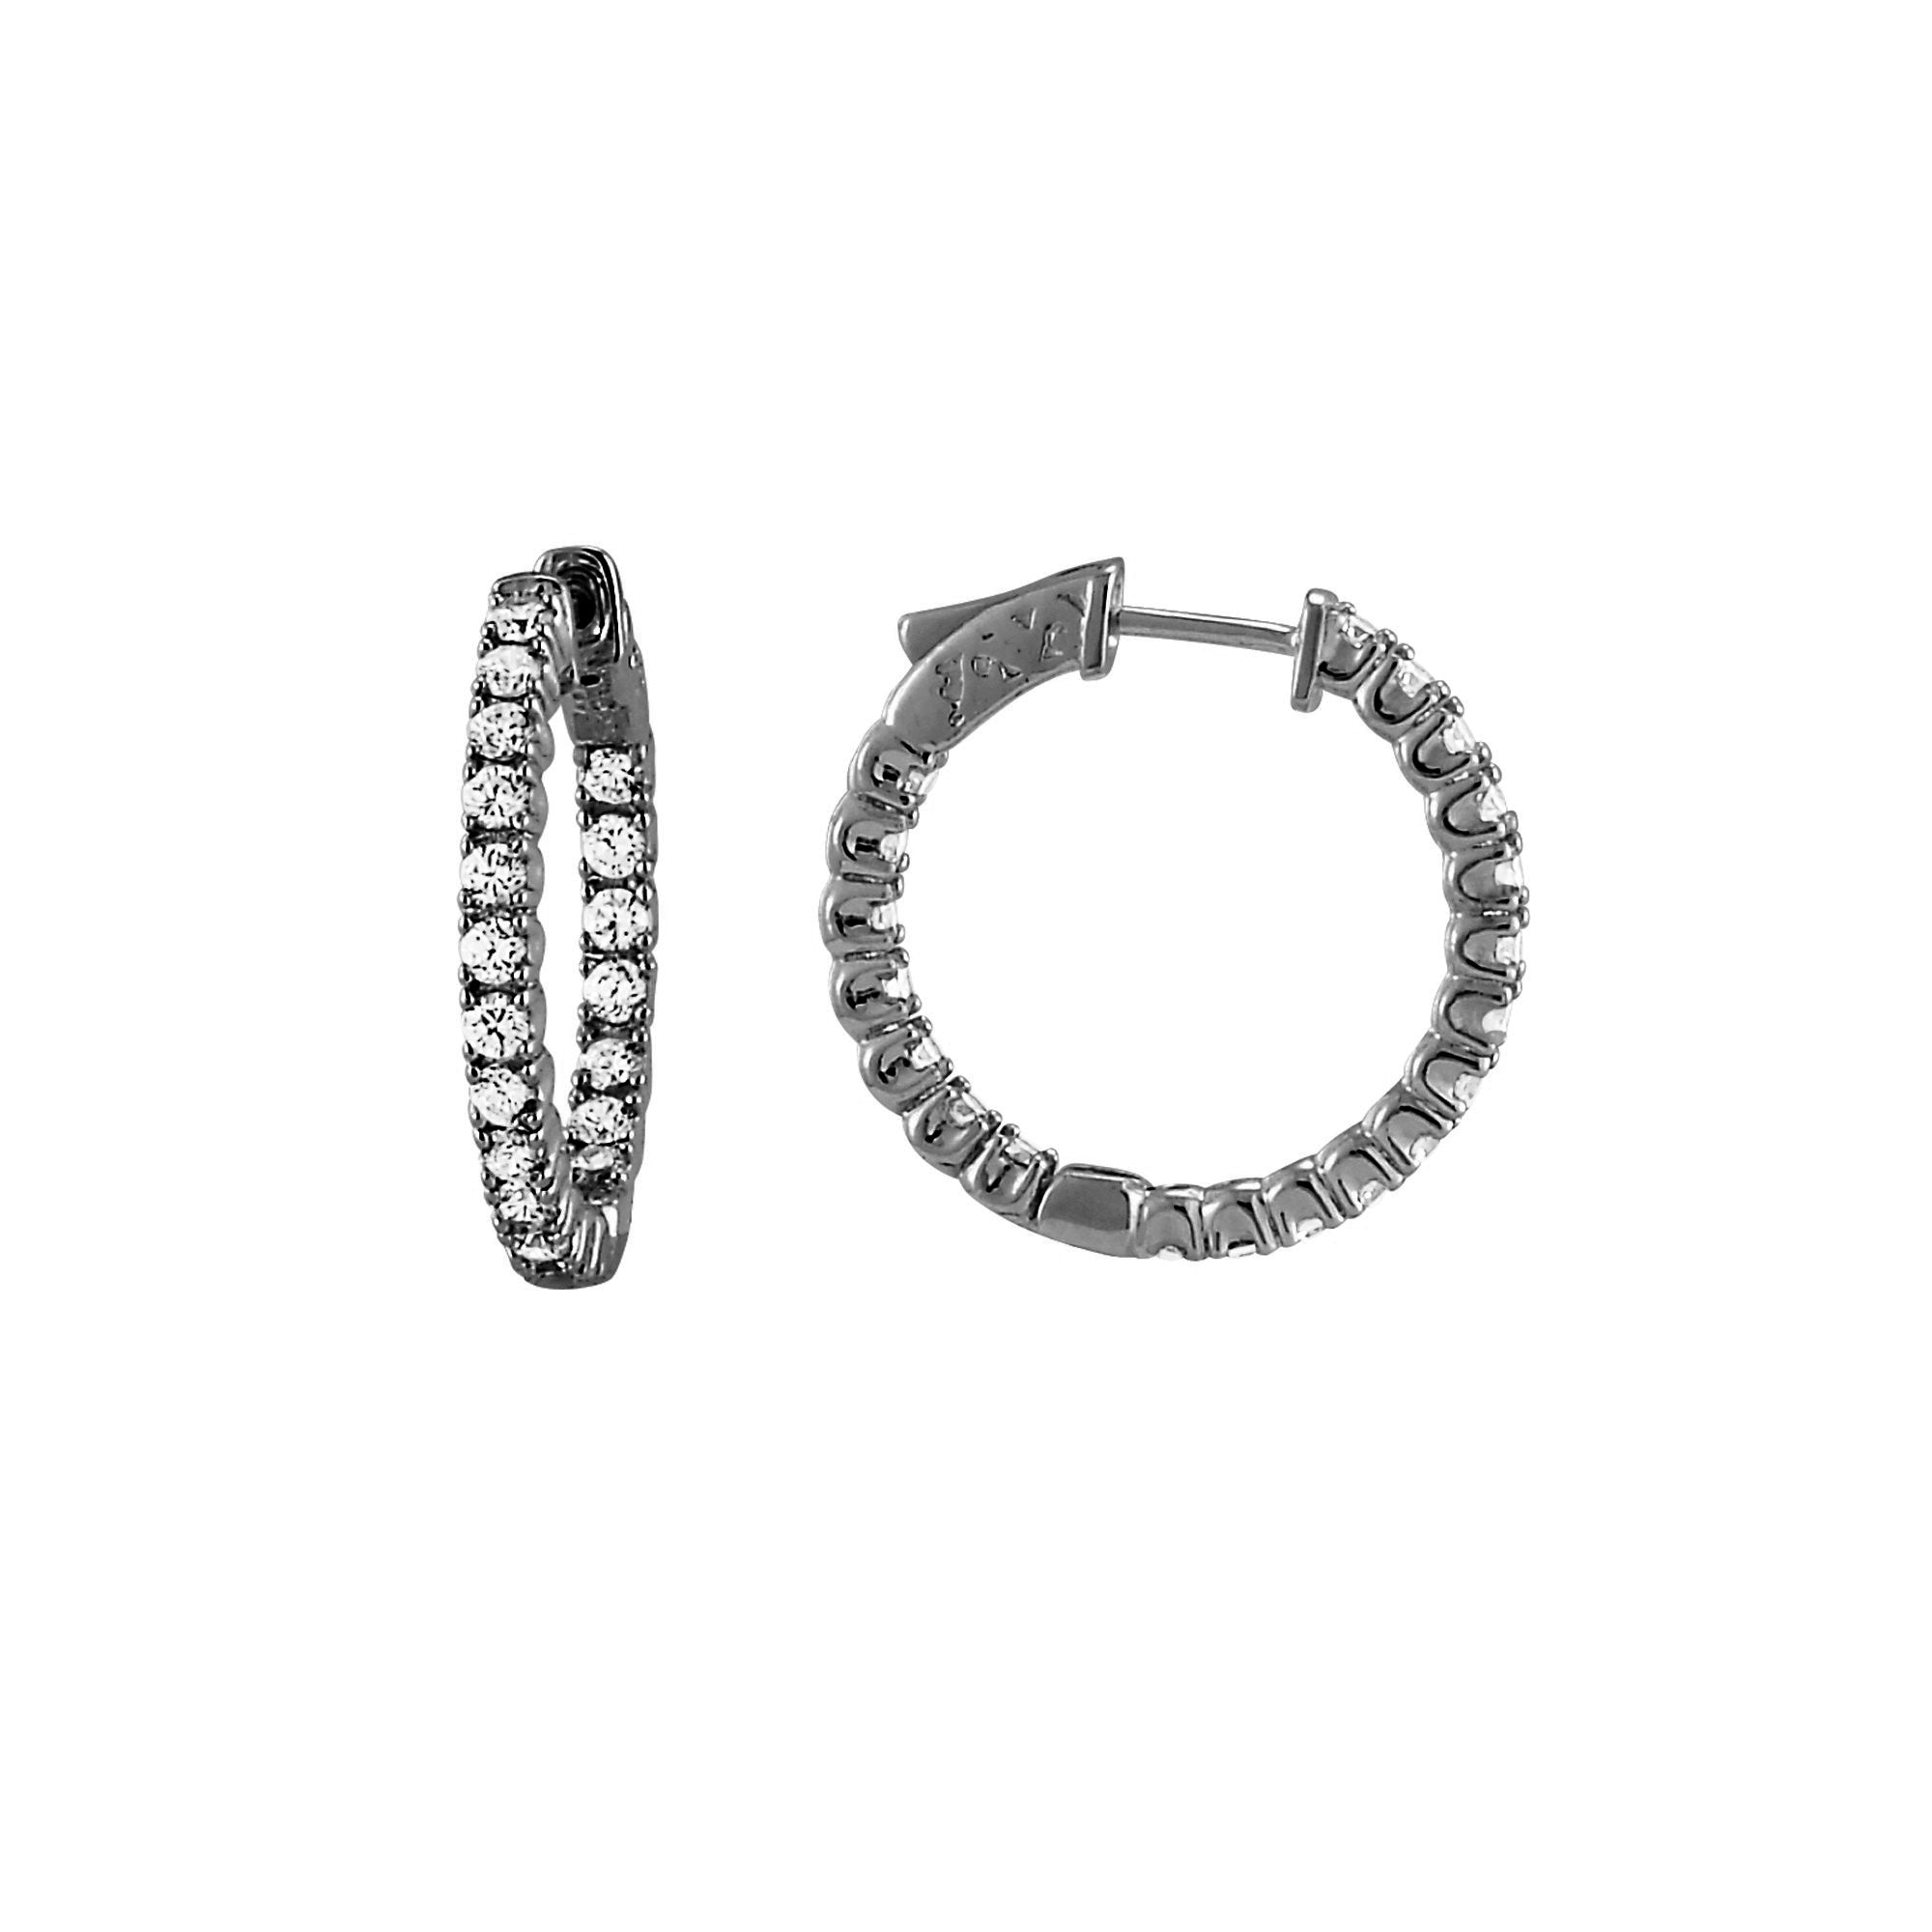 Inside Out CZ Hoops, 1 Inch, Sterling Silver in Black Rhodium